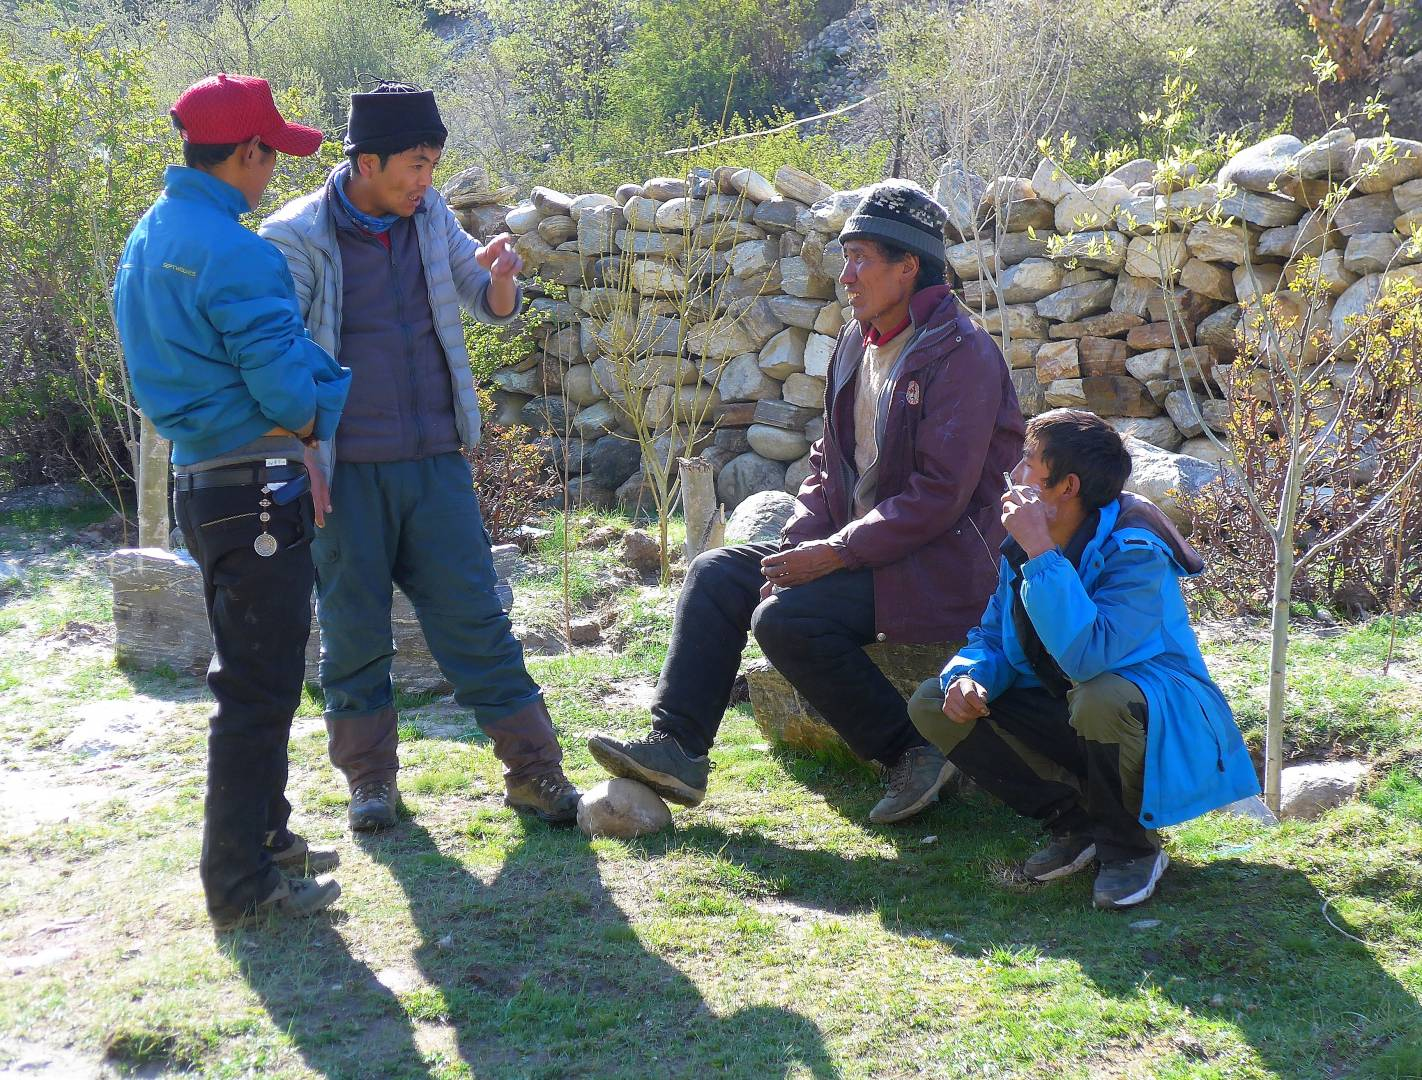 Tashi, our Chinese Tibetan guide, explained plans at a group meeting with the yakmen